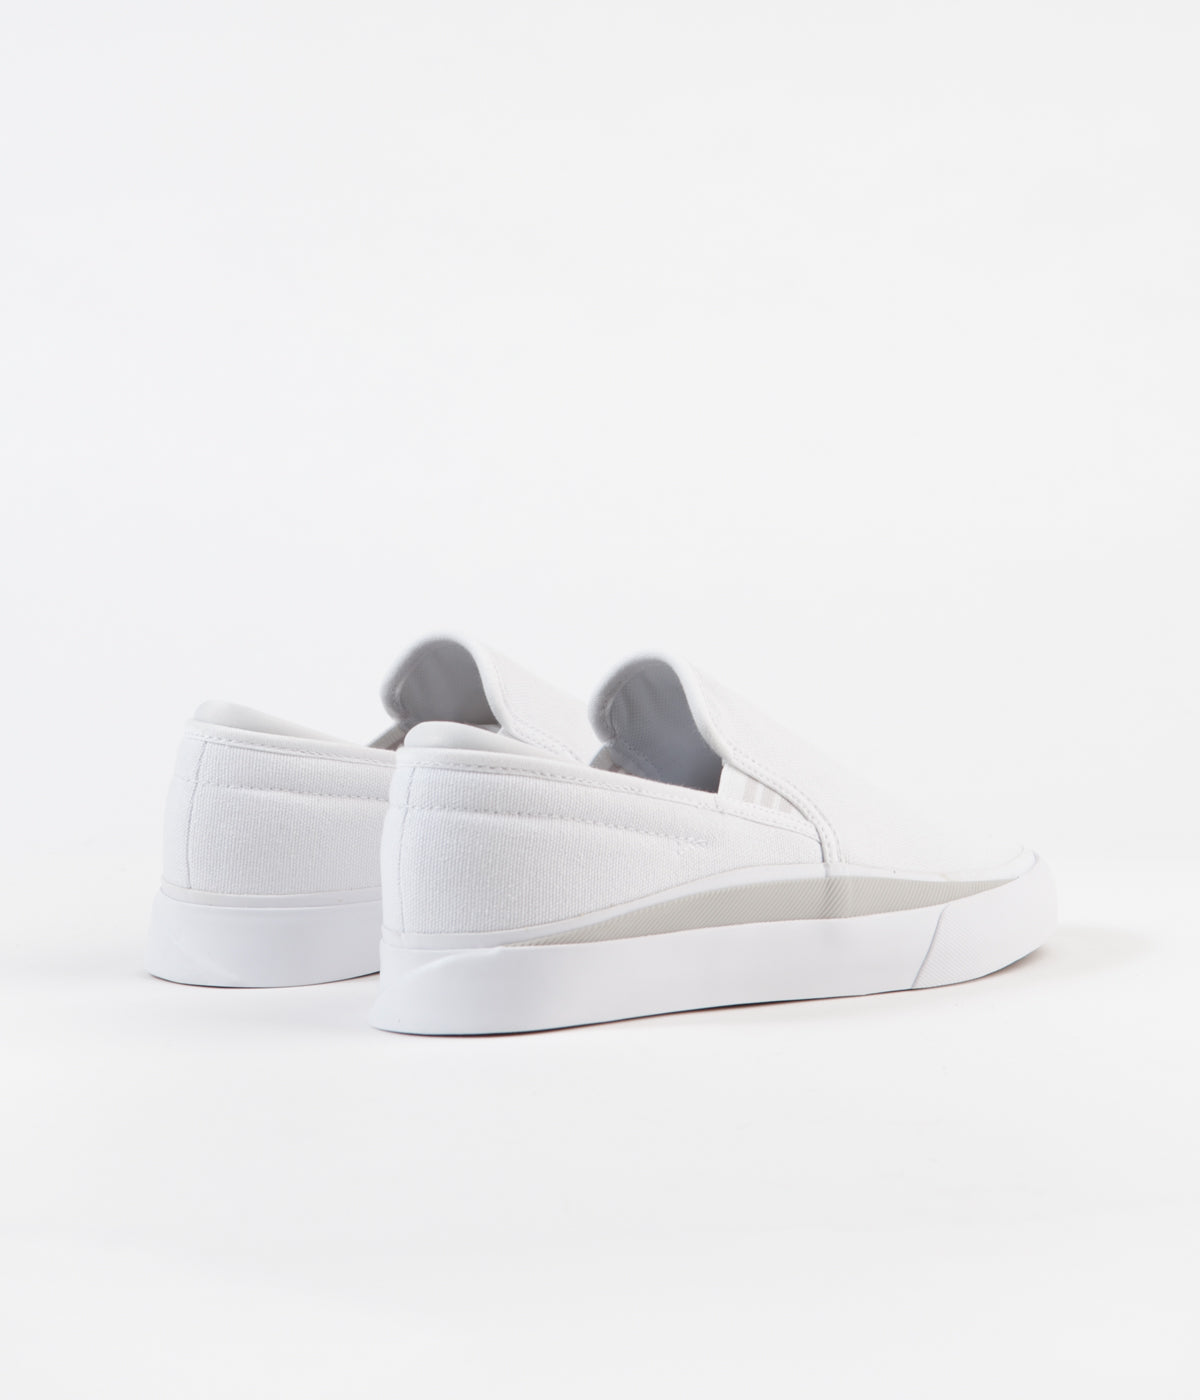 new concept 3c734 03a39 ... Adidas Sabalo Slip On Shoes - White   Grey One   Core Black ...